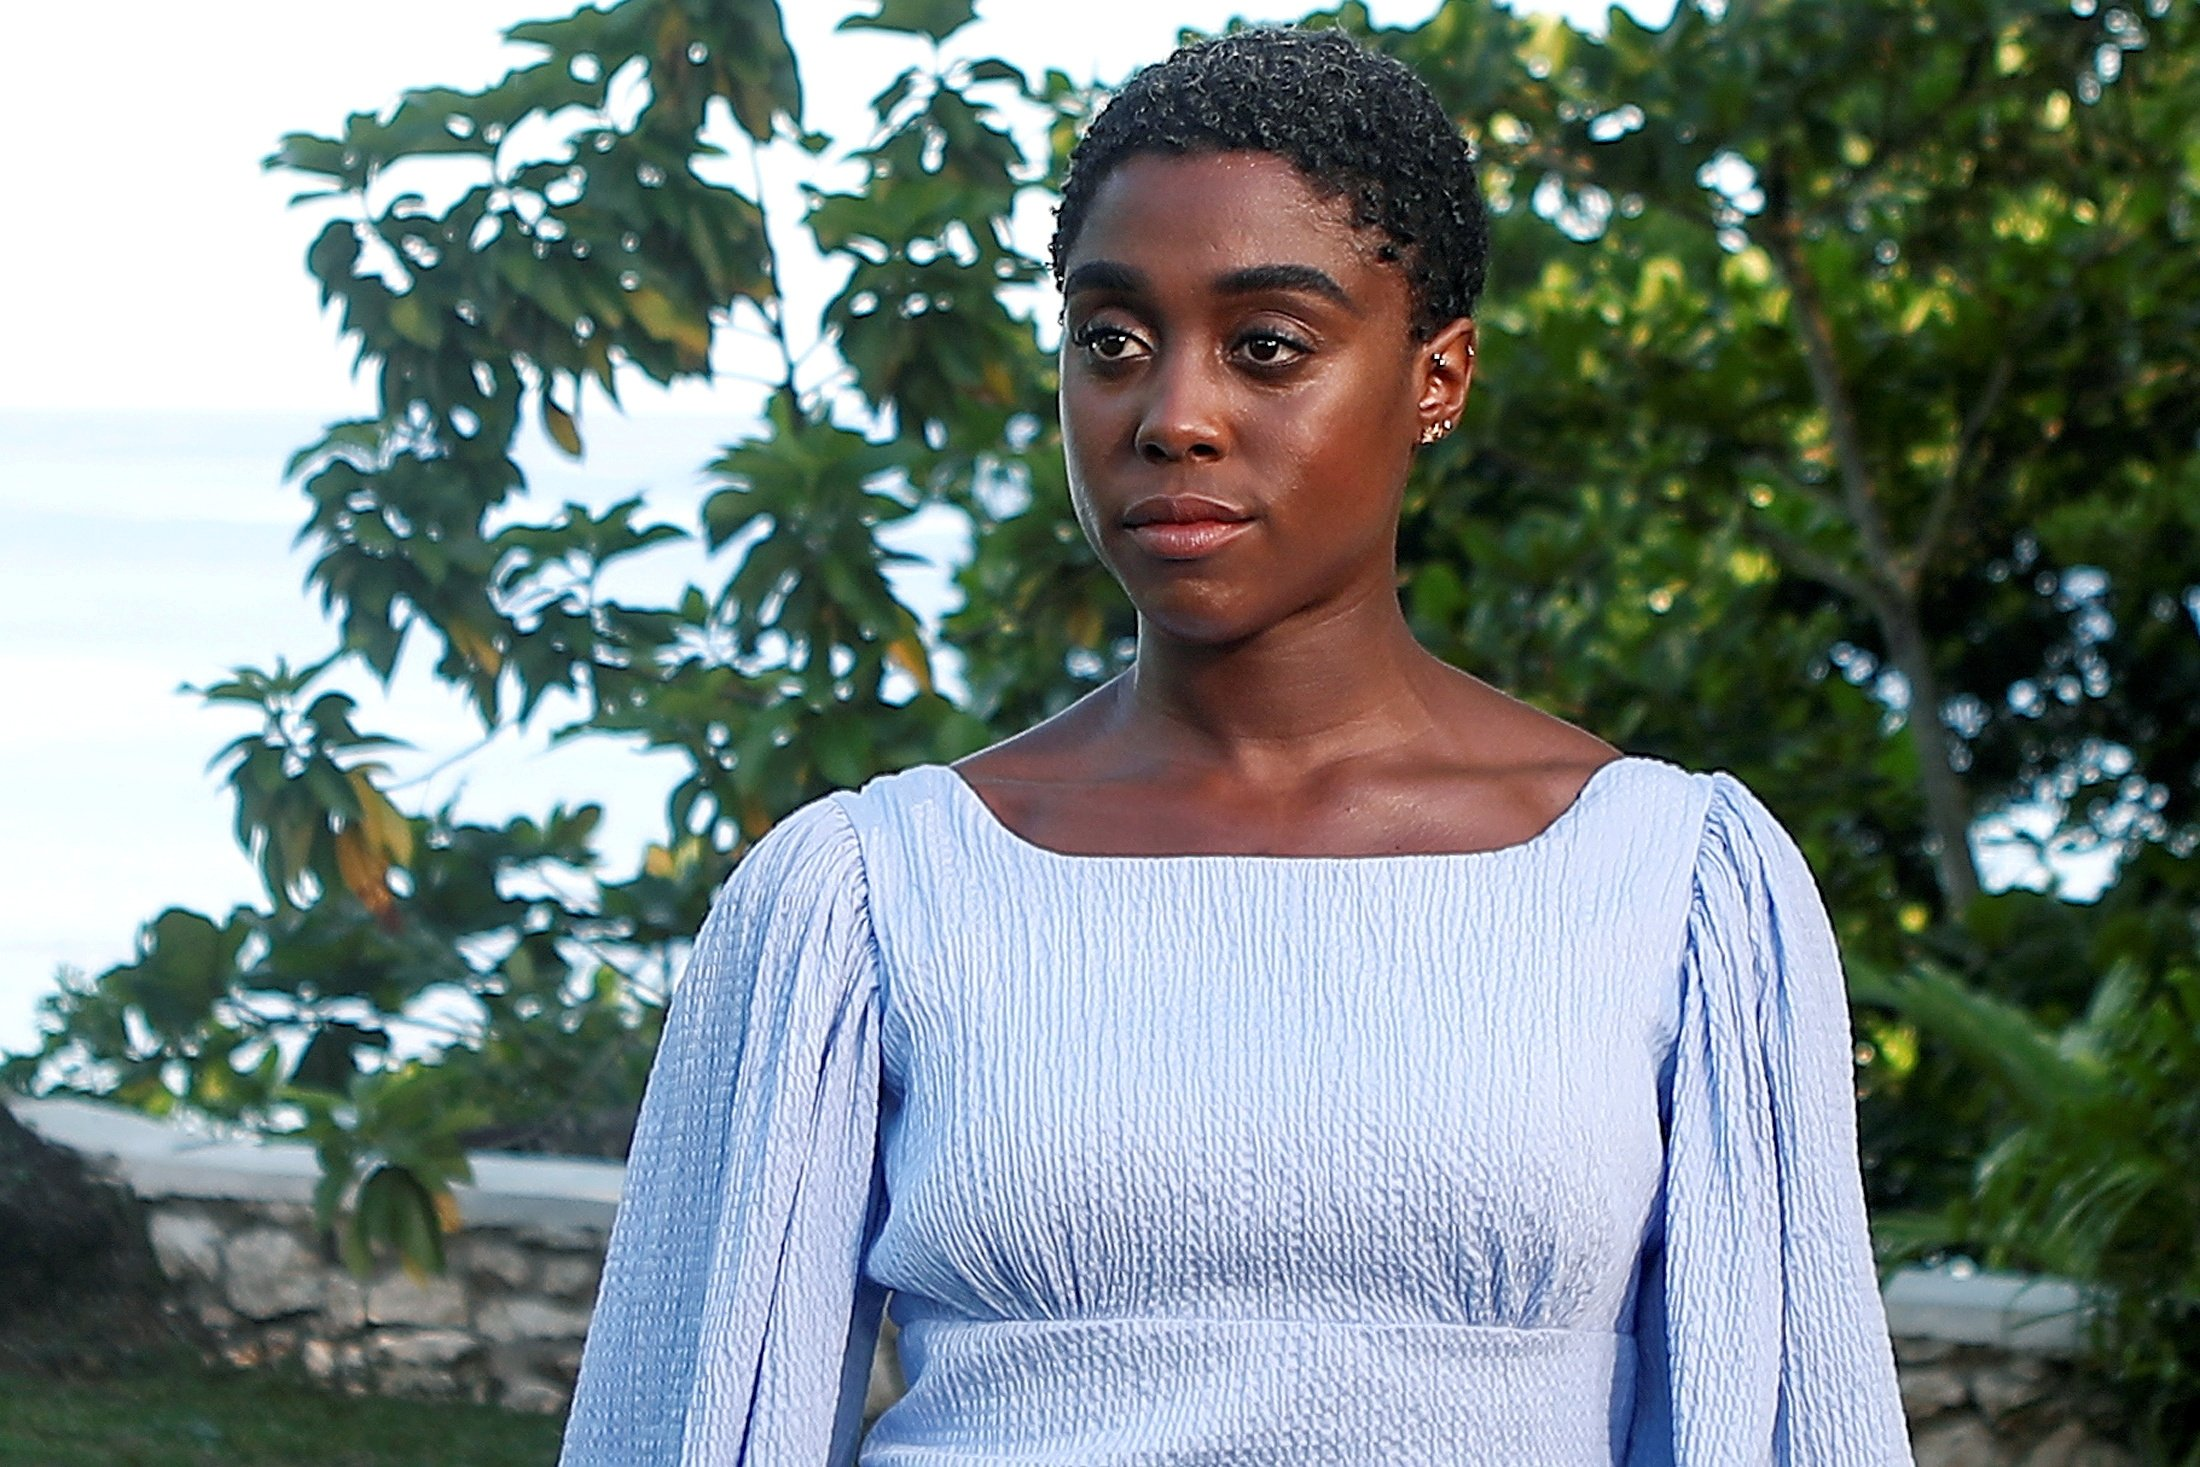 Actor Lashana Lynch poses for a picture during a photocall for the British spy franchise, James Bond's 25th film 'No Time To Die,' in Oracabessa, Jamaica, April 25, 2019. (Reuters Photo)